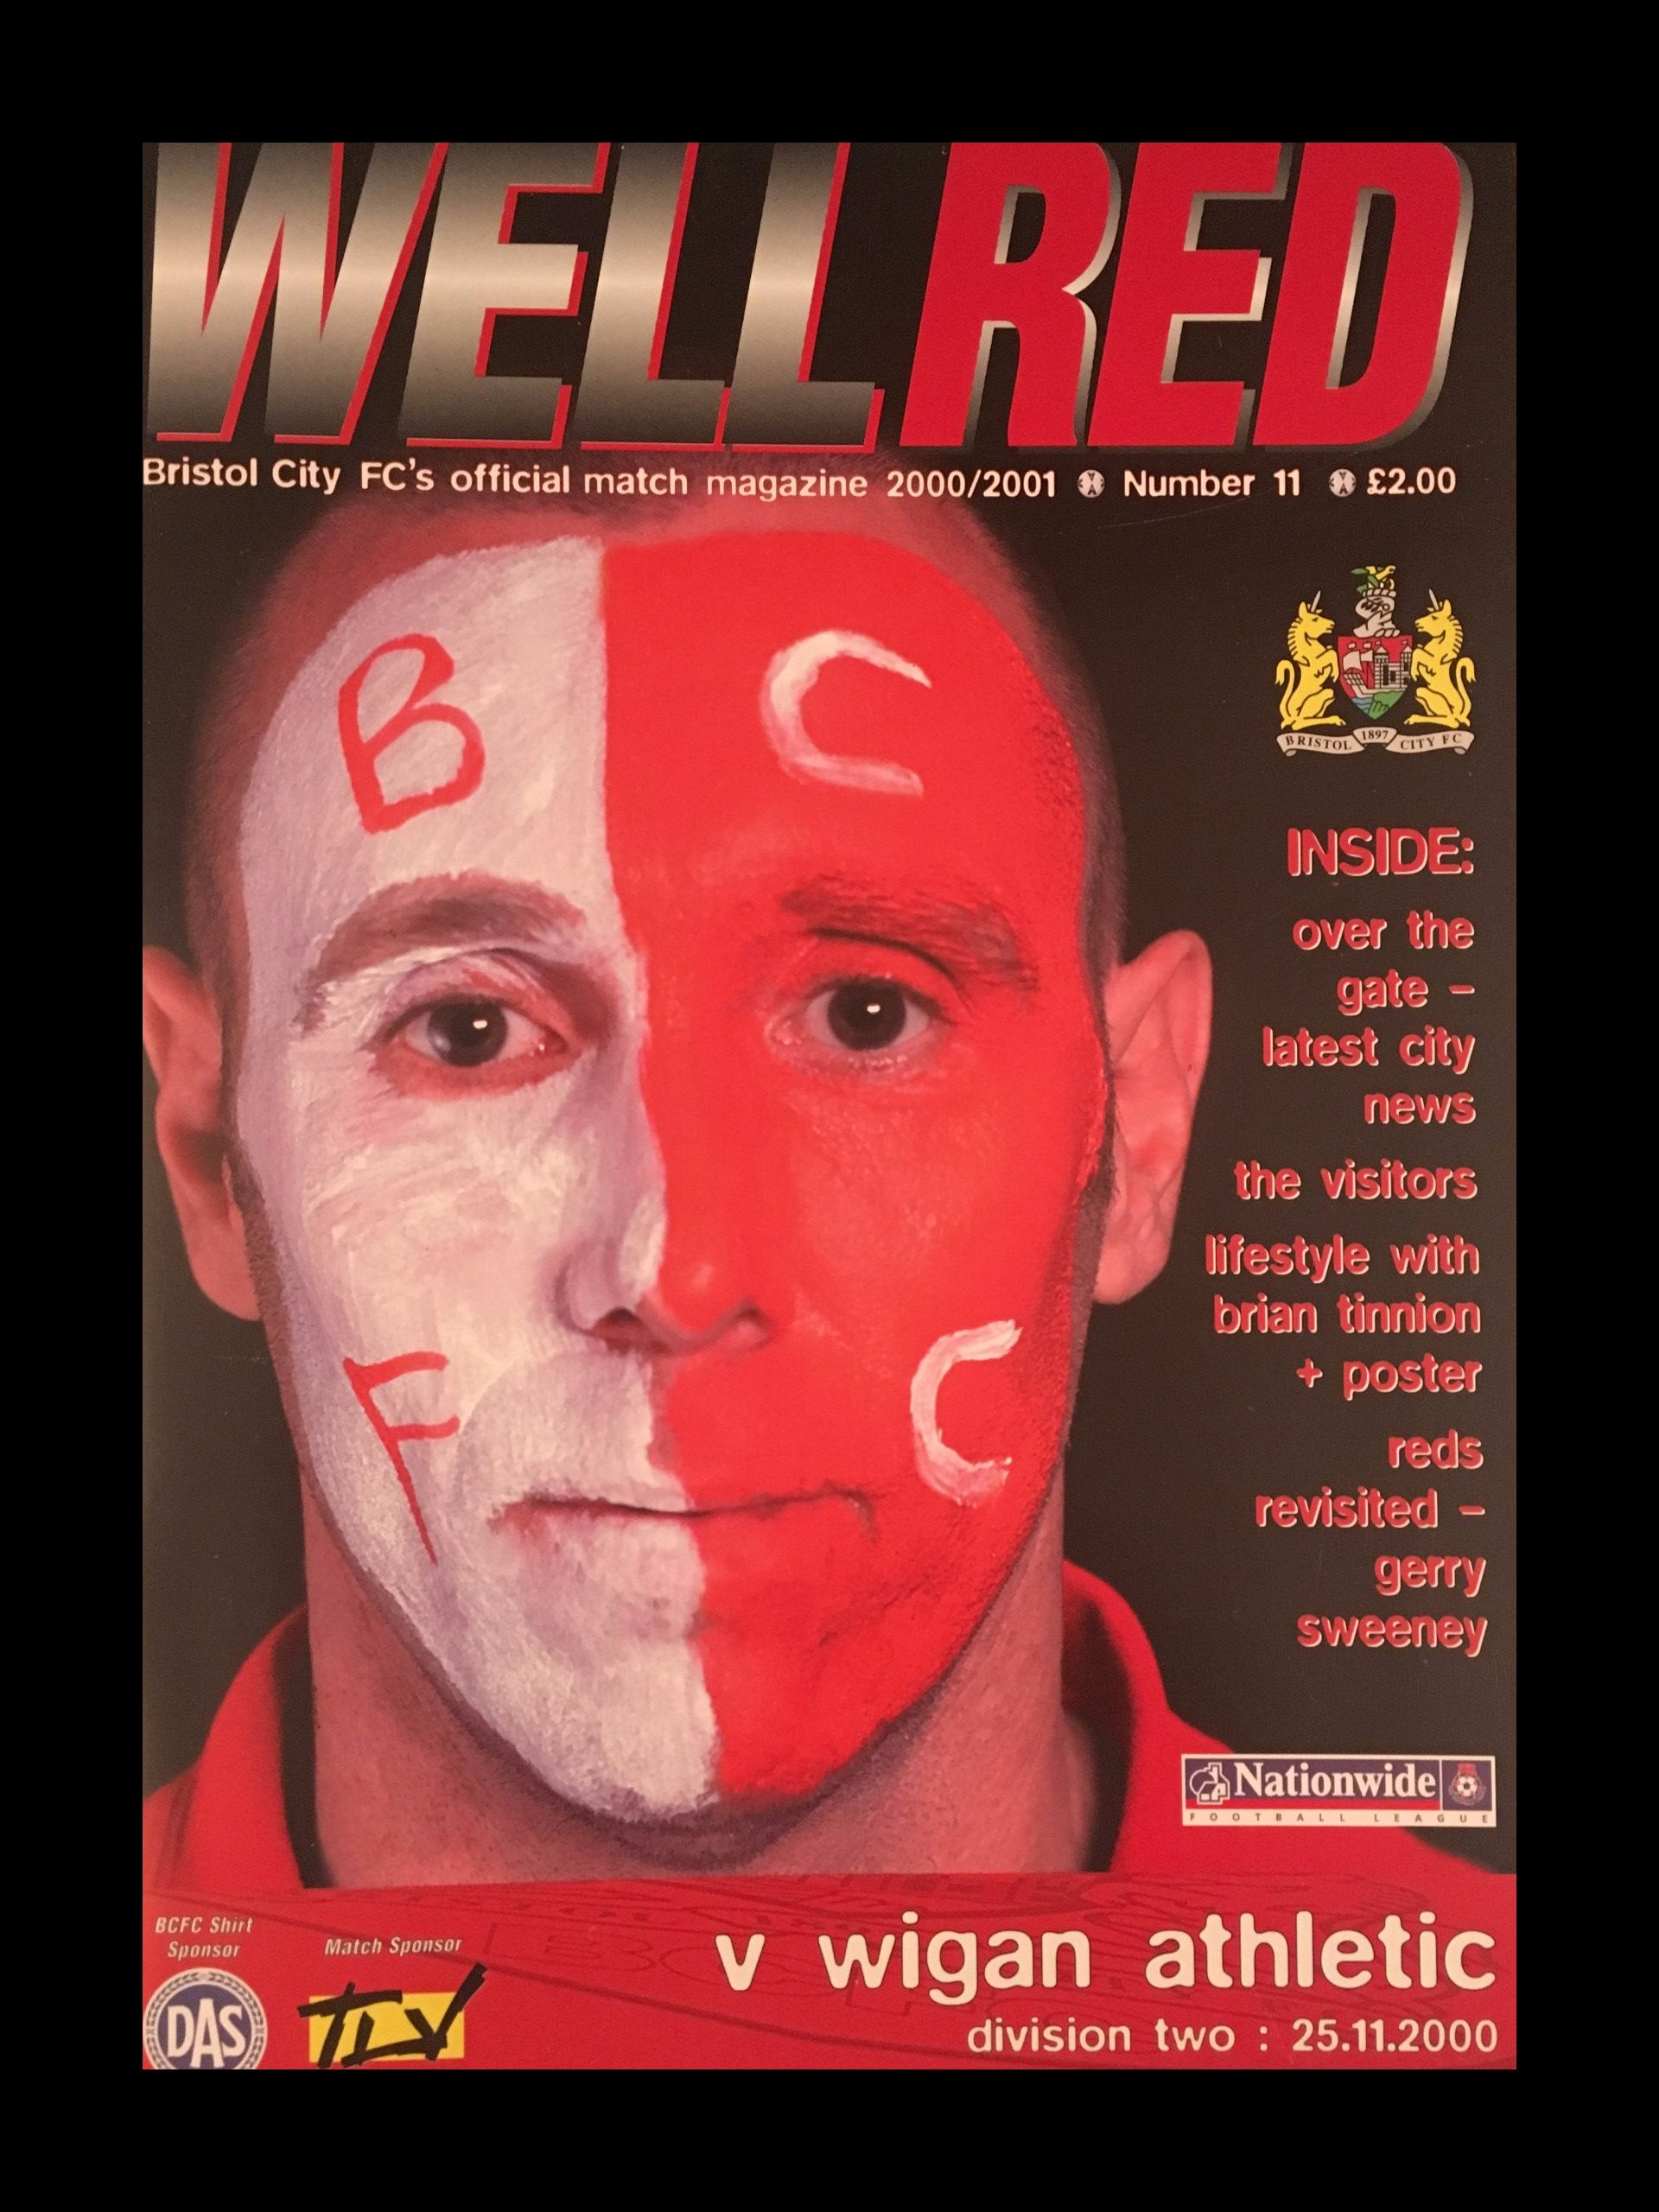 Bristol City v Wigan Athletic 25-11-2000 Programme